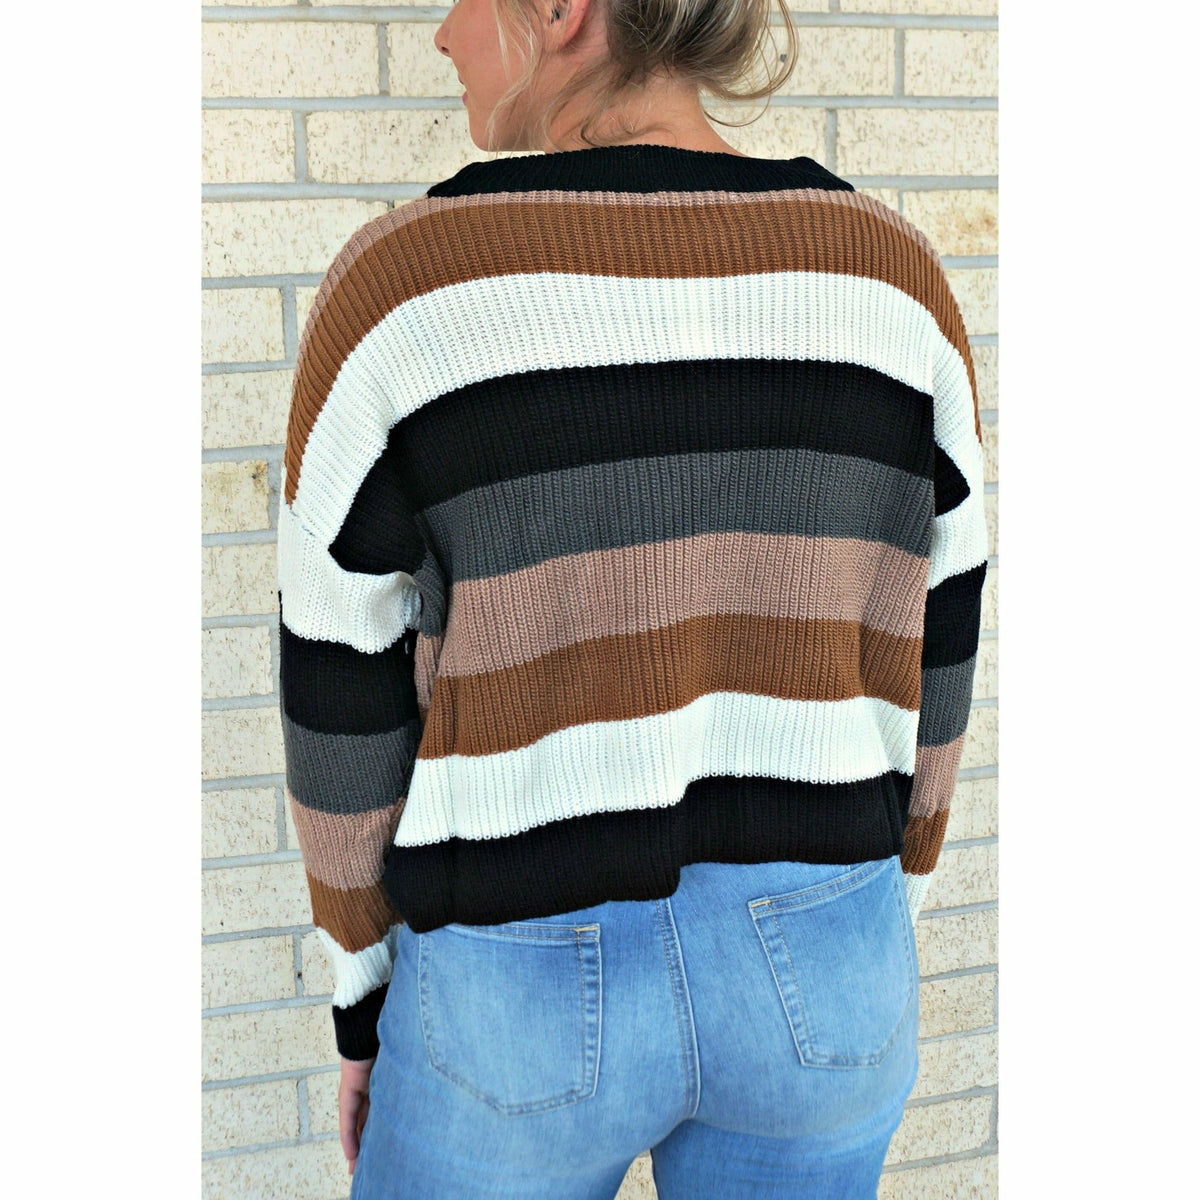 Give Thanks Stripe Sweater